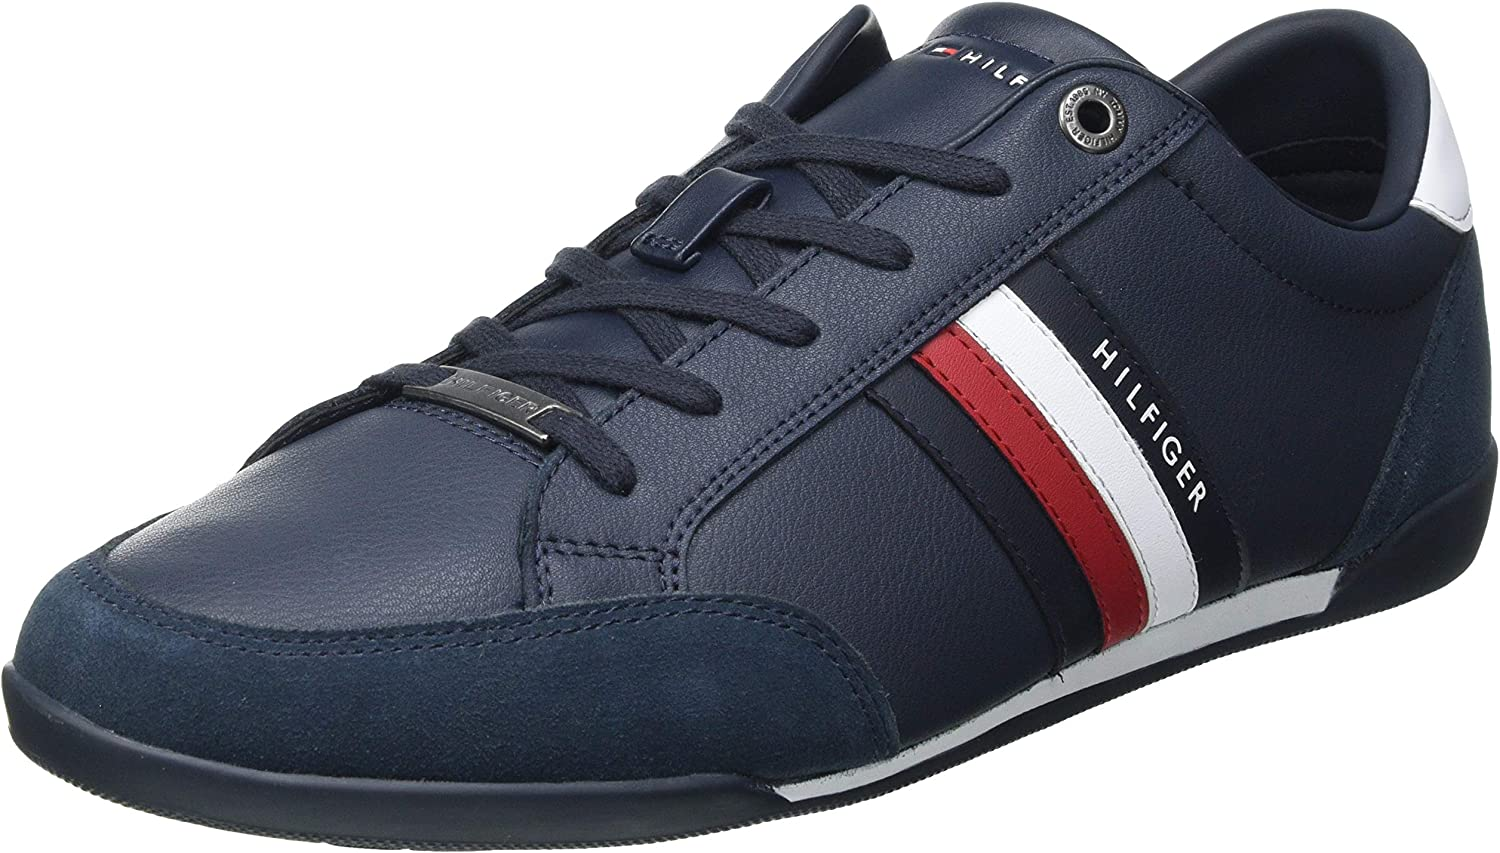 Tommy Hilfiger Corporate Material Mix Cupsole, Zapatillas Hombre